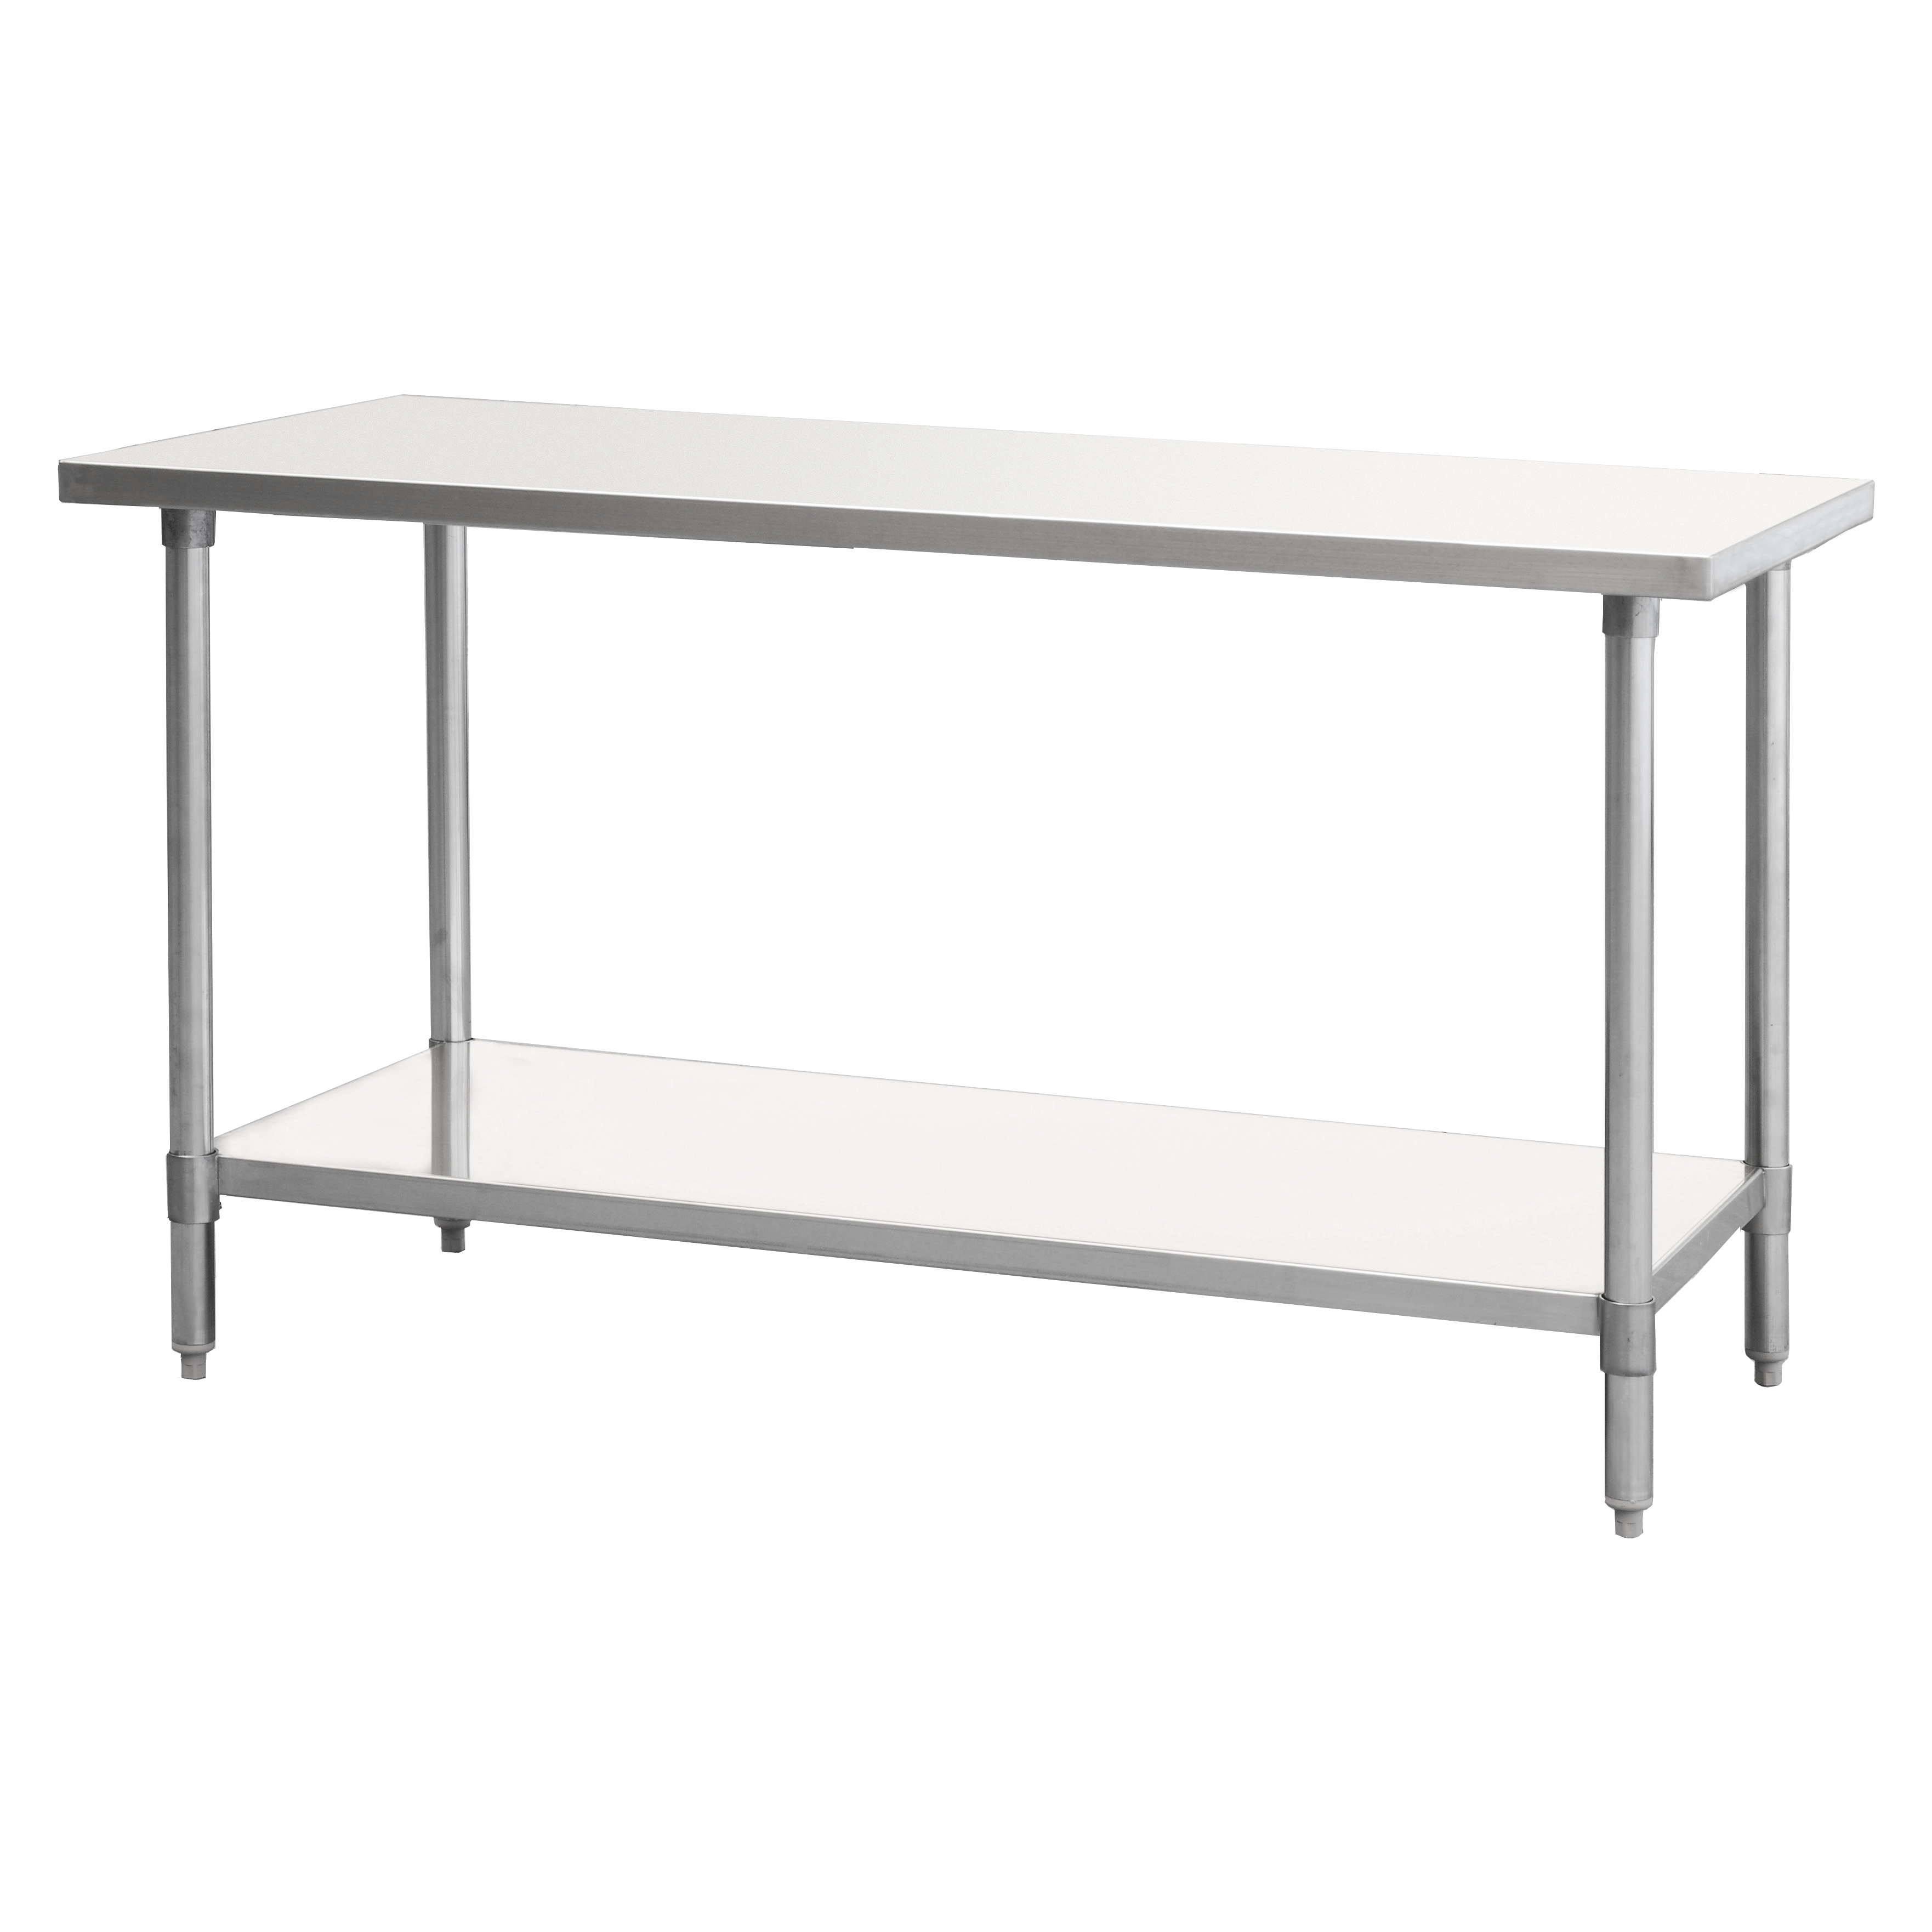 Atosa USA SSTW-2460 work table,  54 - 62, stainless steel top